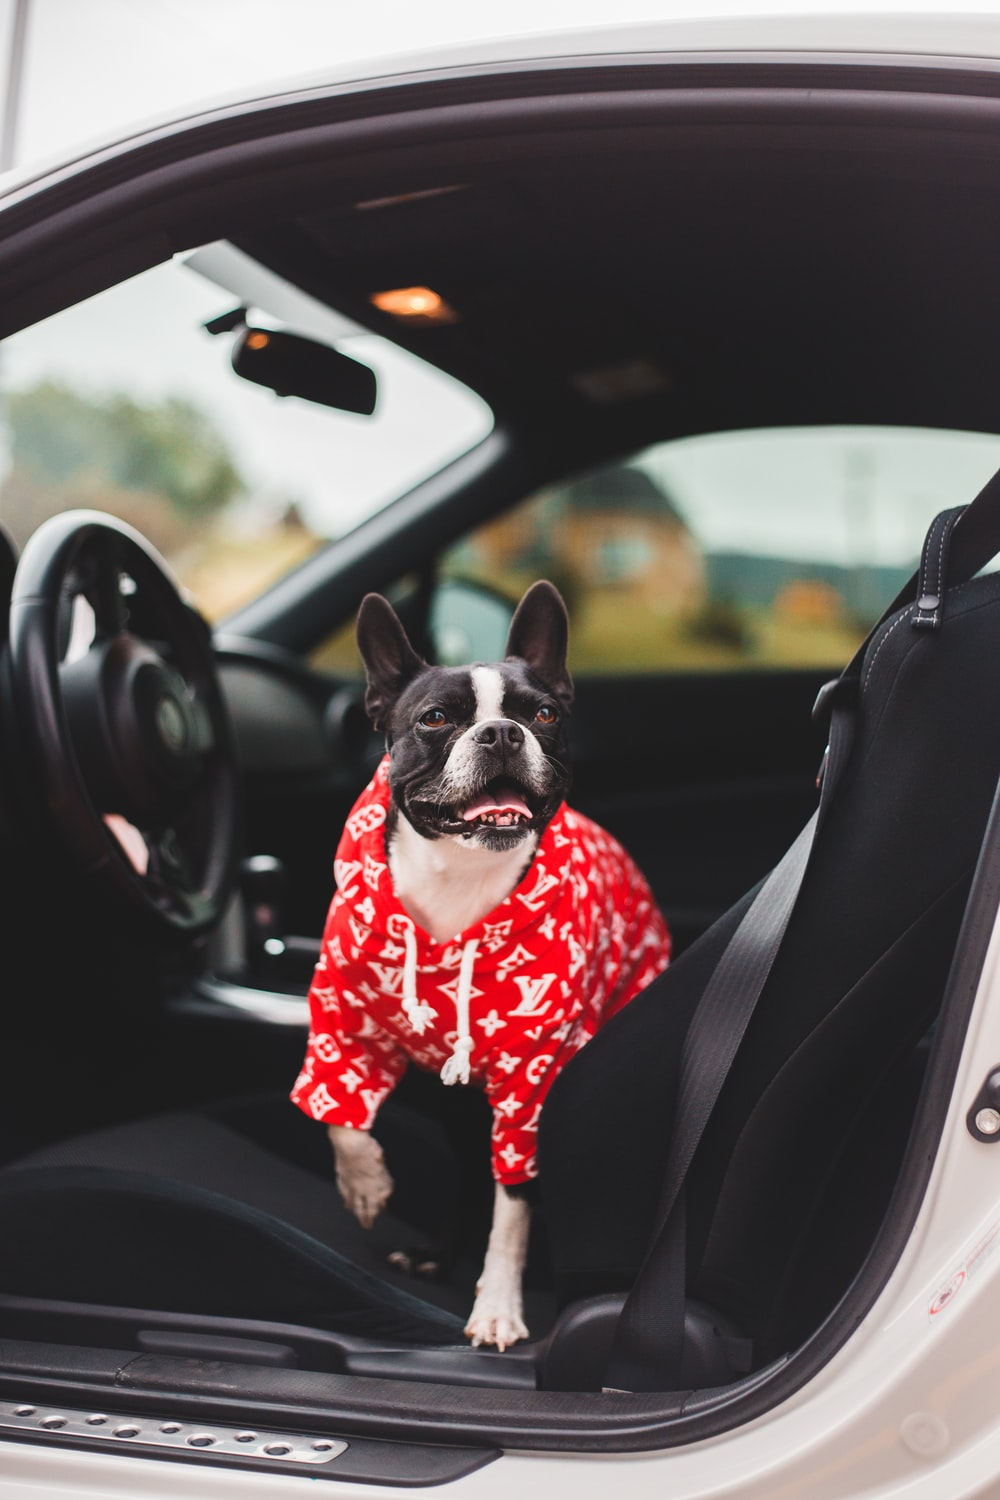 black and white short coated dog in red and black polka dot dress sitting on car